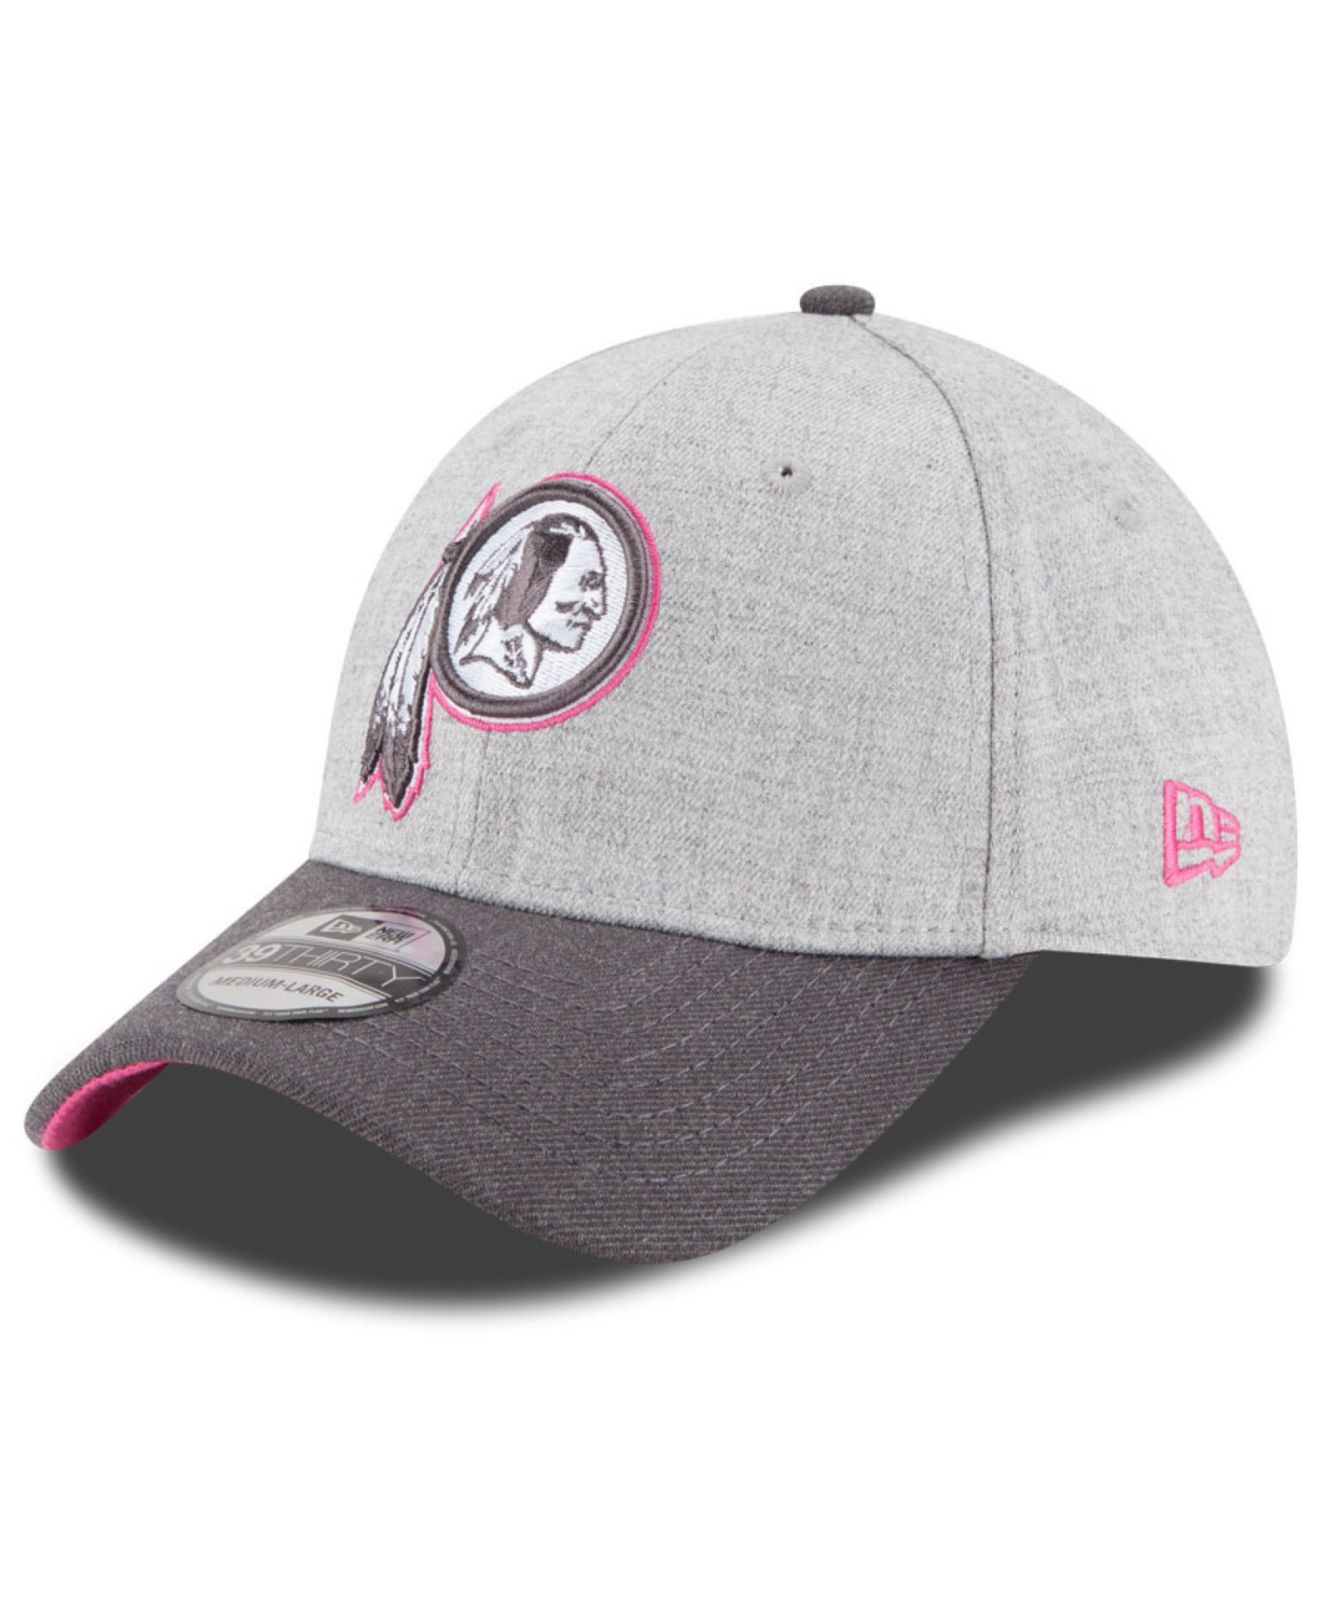 4c3ebd7c8 KTZ Washington Redskins Breast Cancer Awareness 39thirty Cap in Gray ...